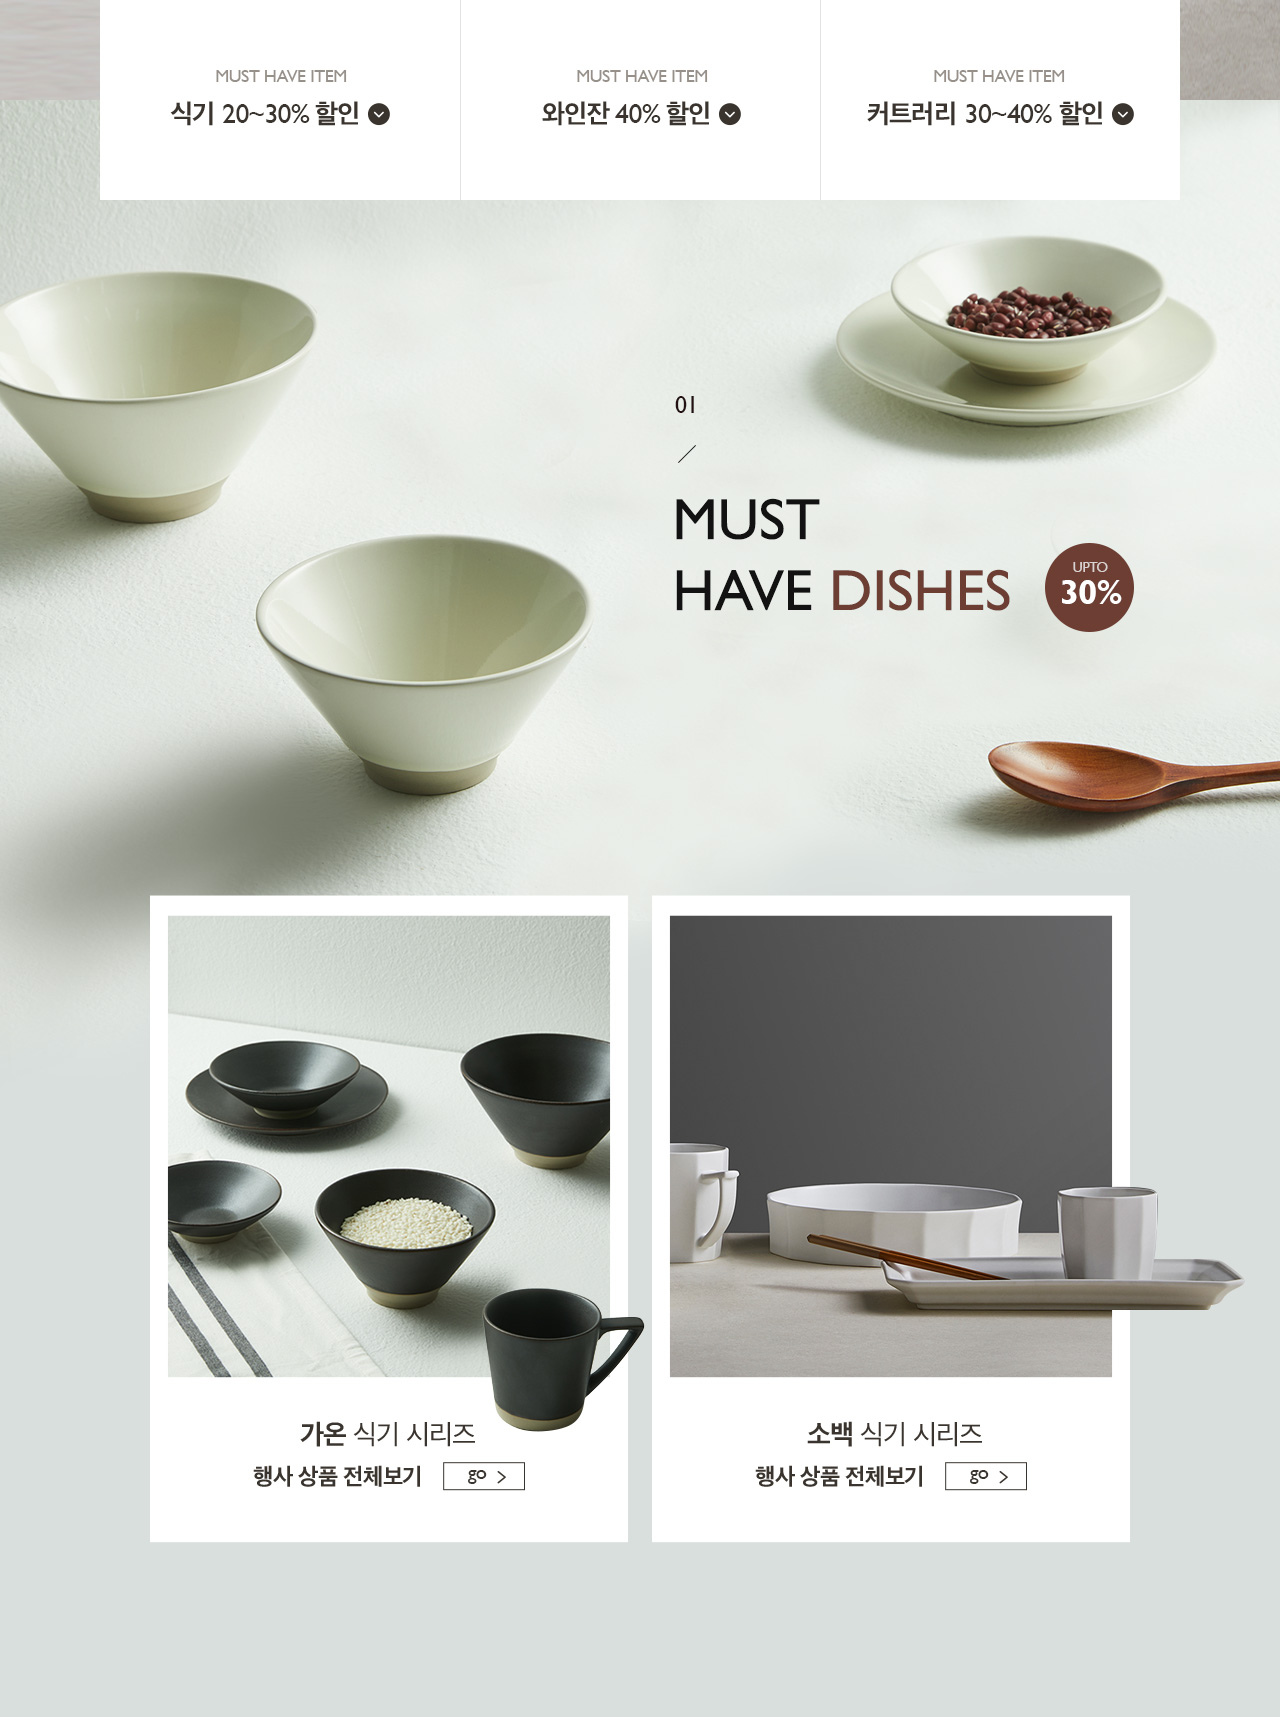 MUST HAVE DISHES 30%